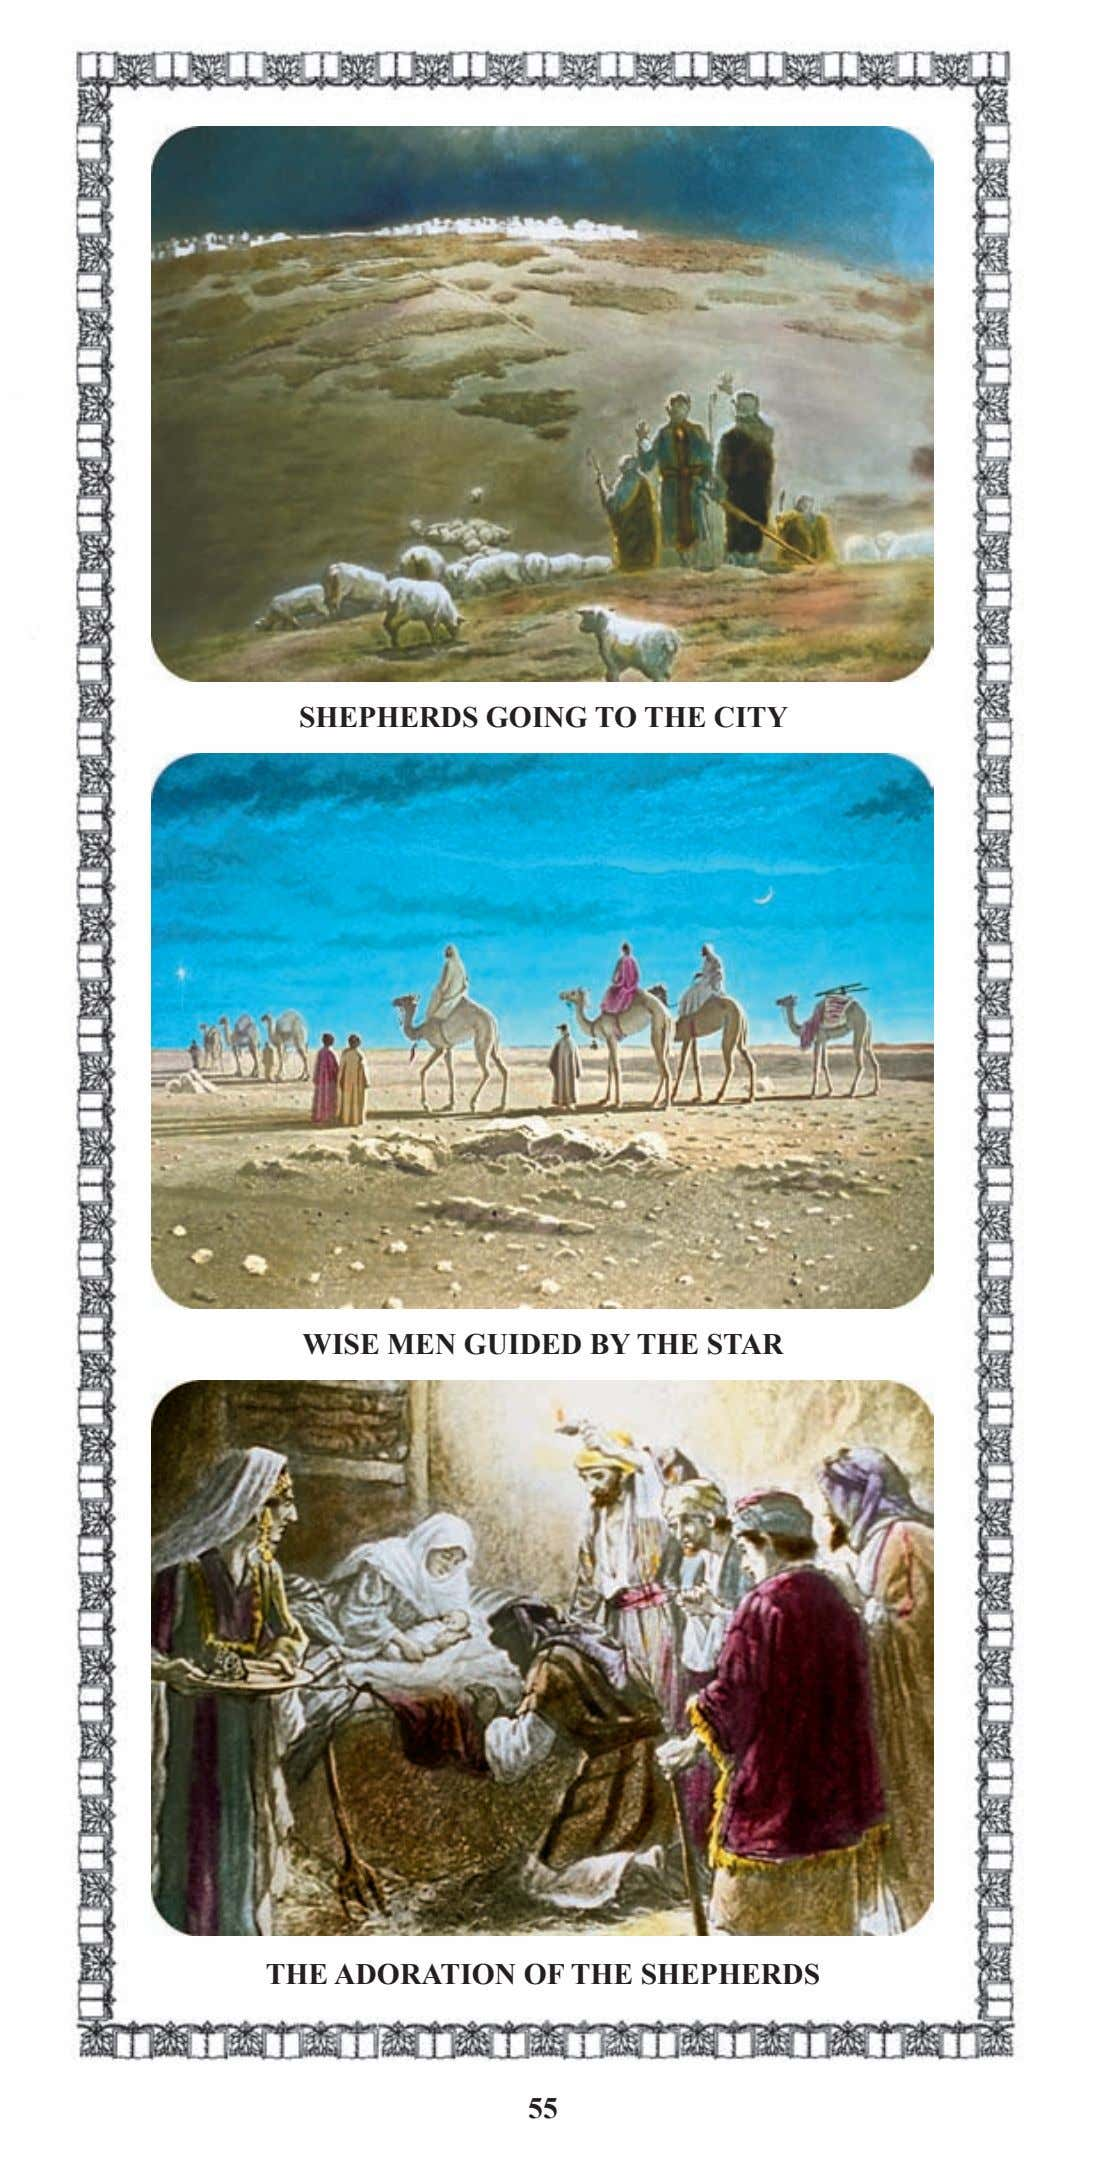 SHEPHERDS GOING TO THE CITY WISE MEN GUIDED BY THE STAR THE ADORATION OF THE